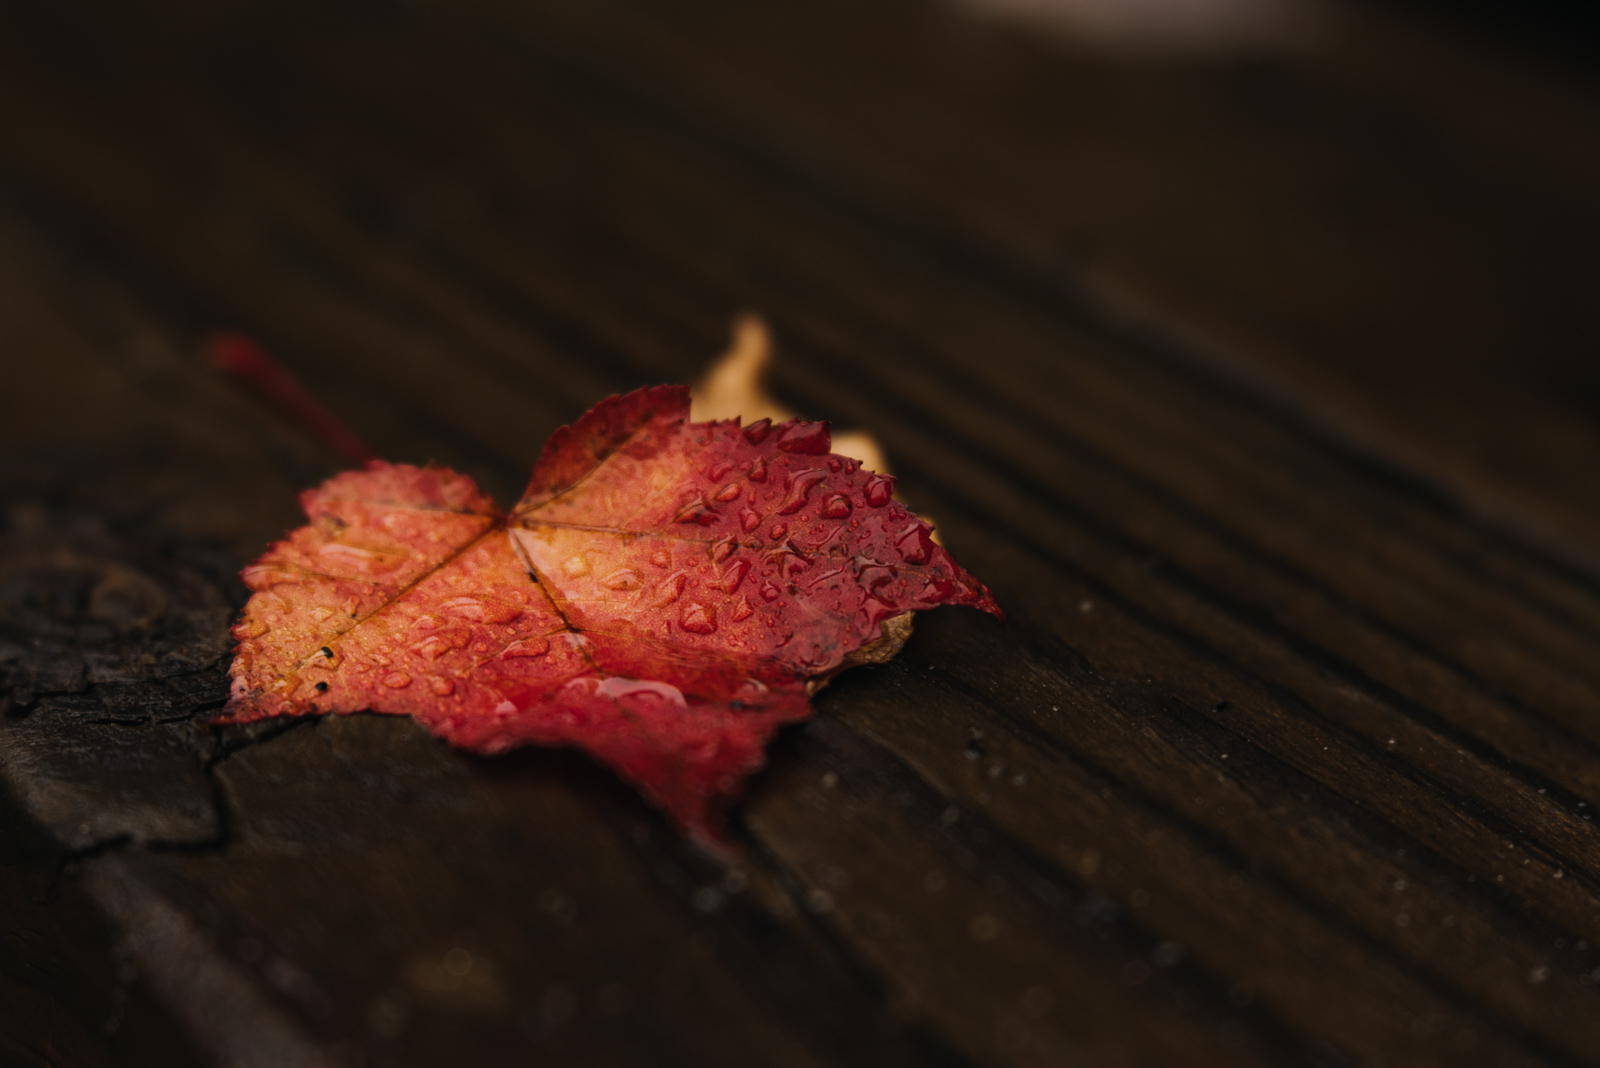 photographing fall color red leaf with water droplets sarah gupta